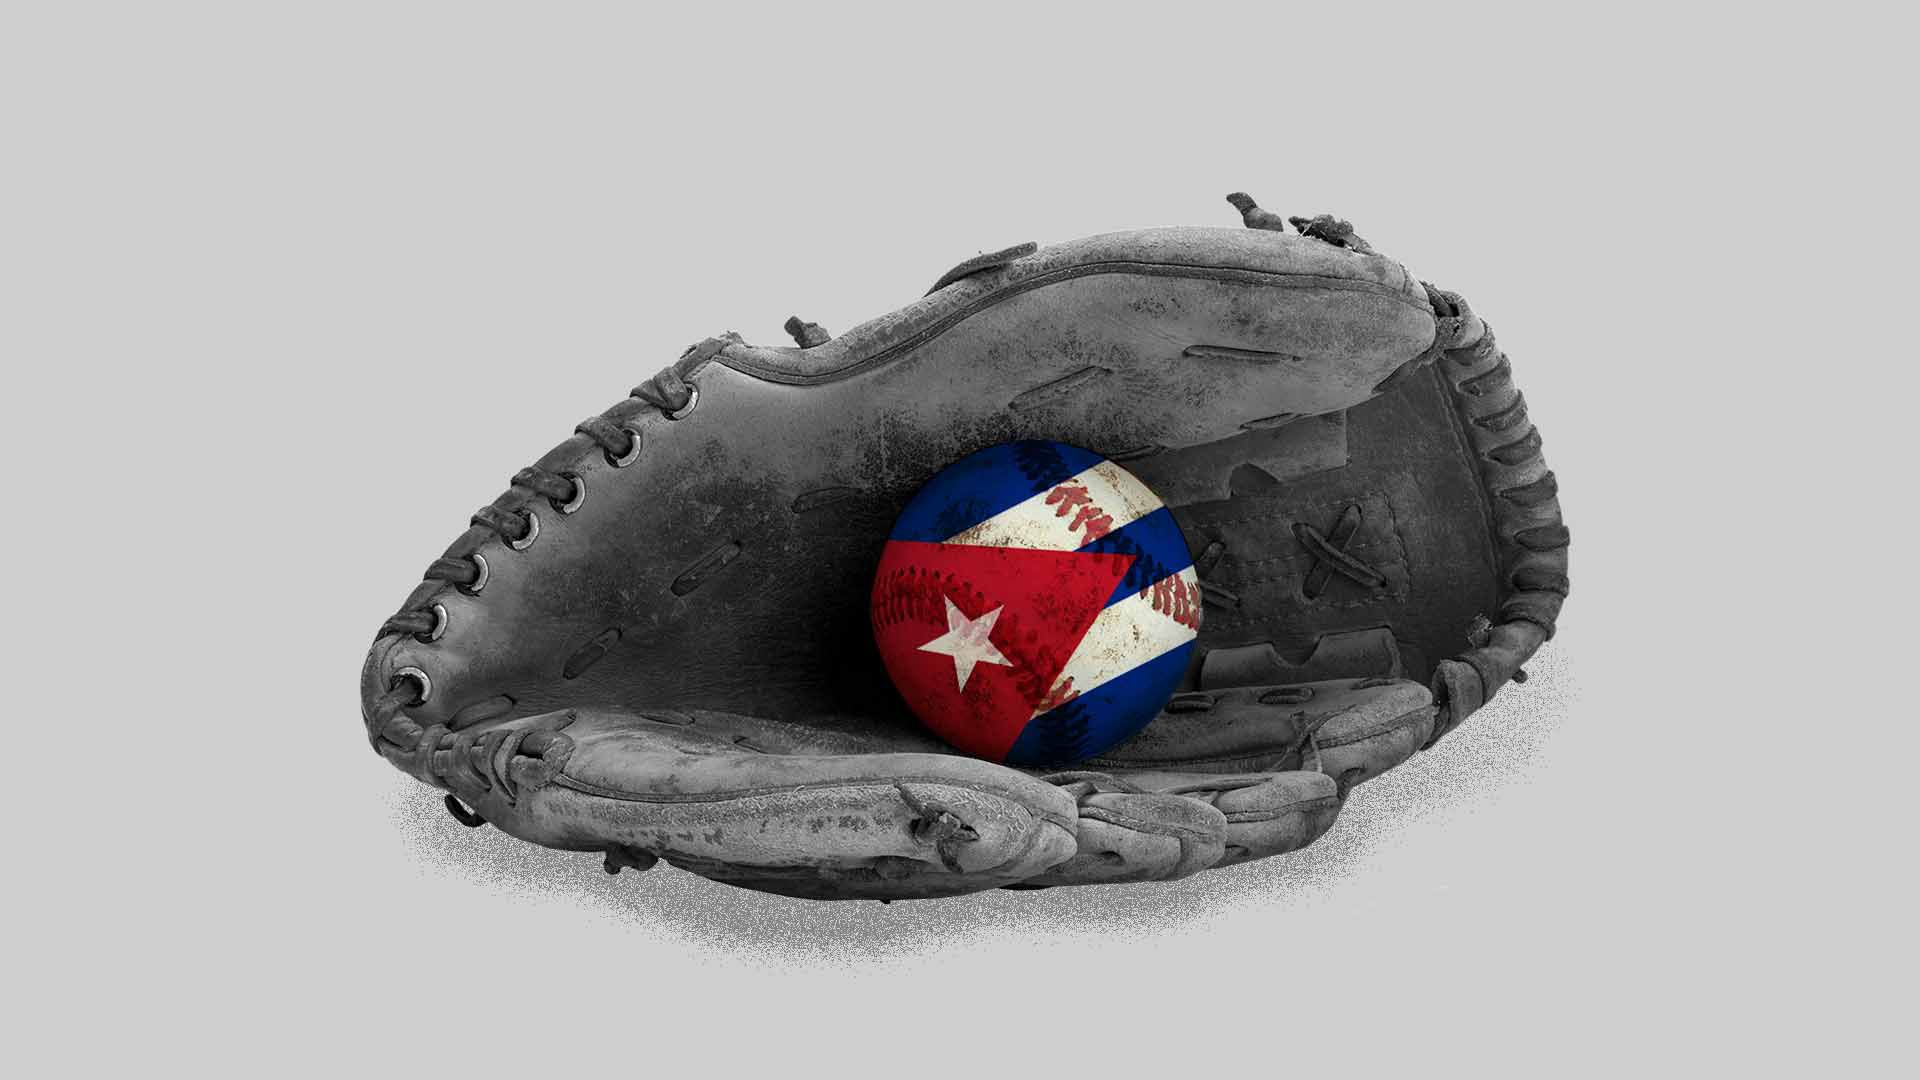 Illustration of a baseball glove on the ground with a Cuban-flag baseball